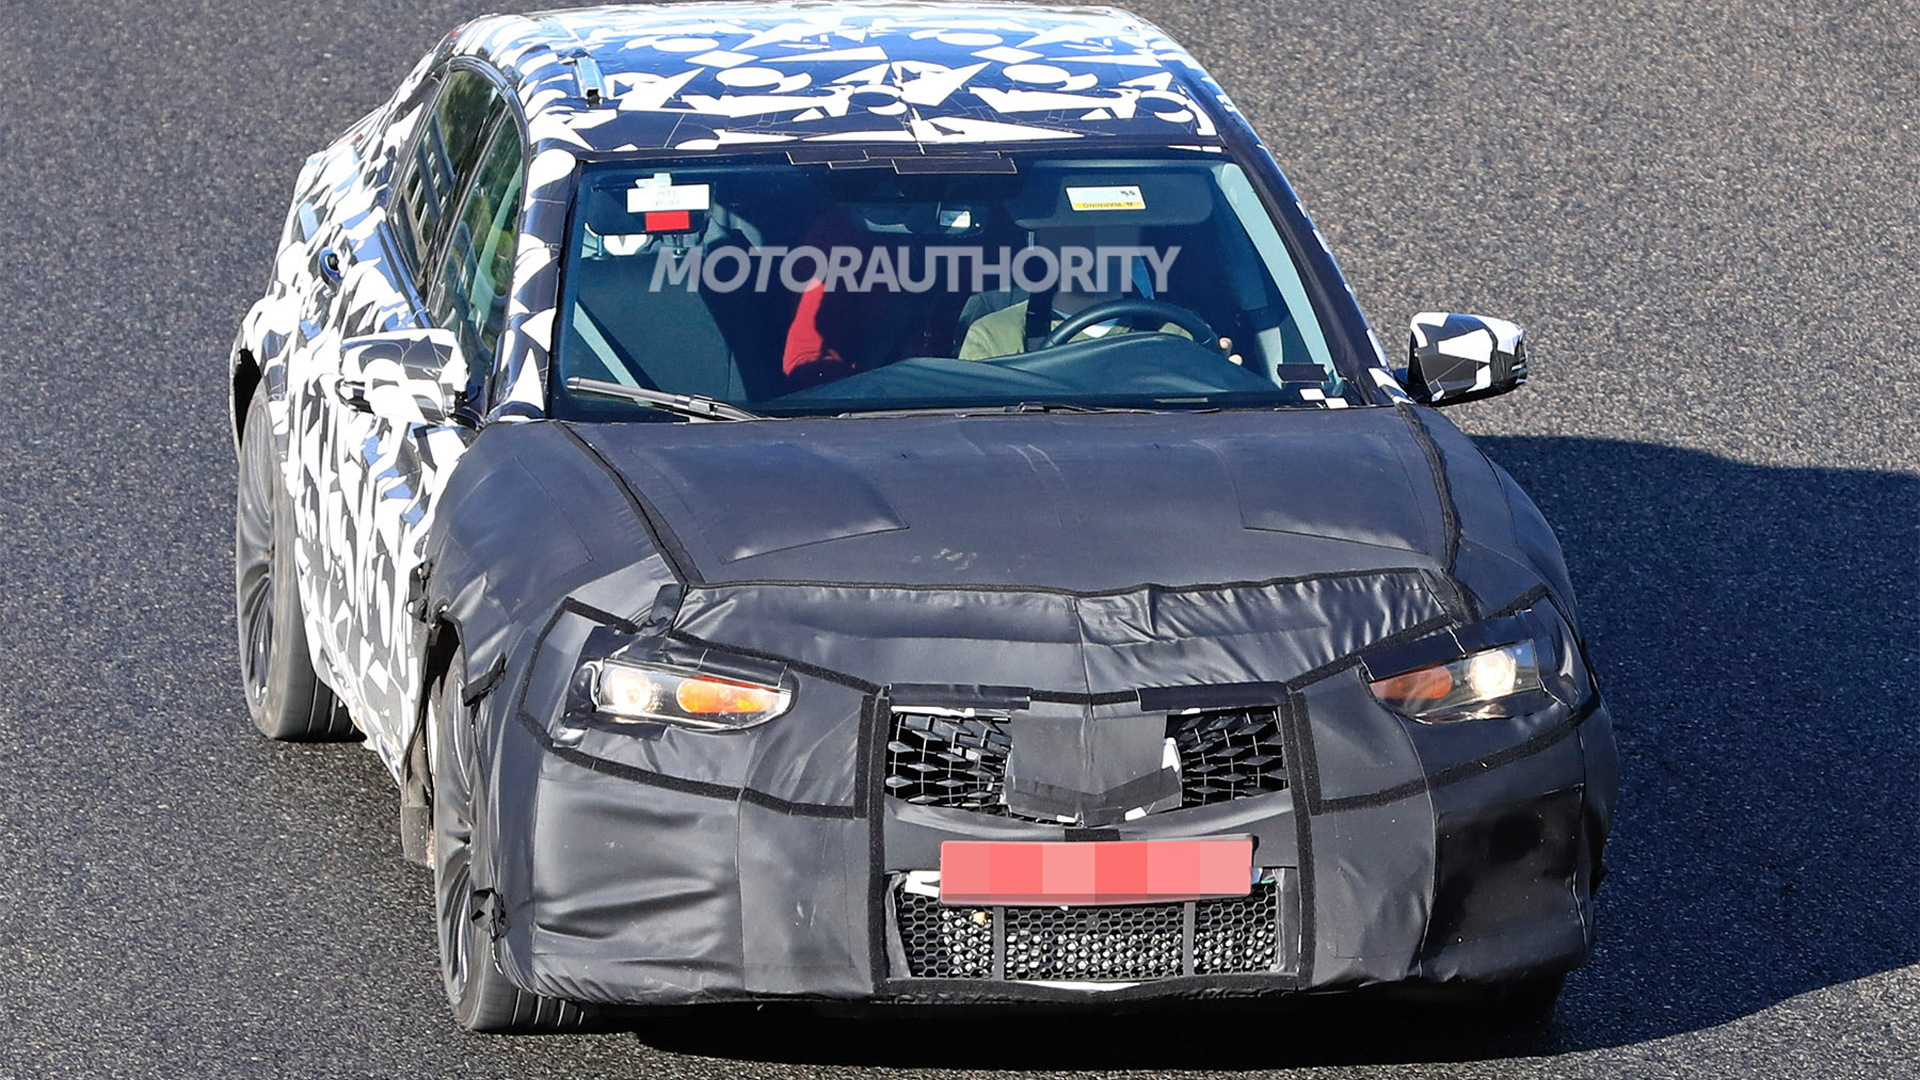 2021 Acura TLX Type S test mule spy shots - Photo credit: S. Baldauf/SB-Medien